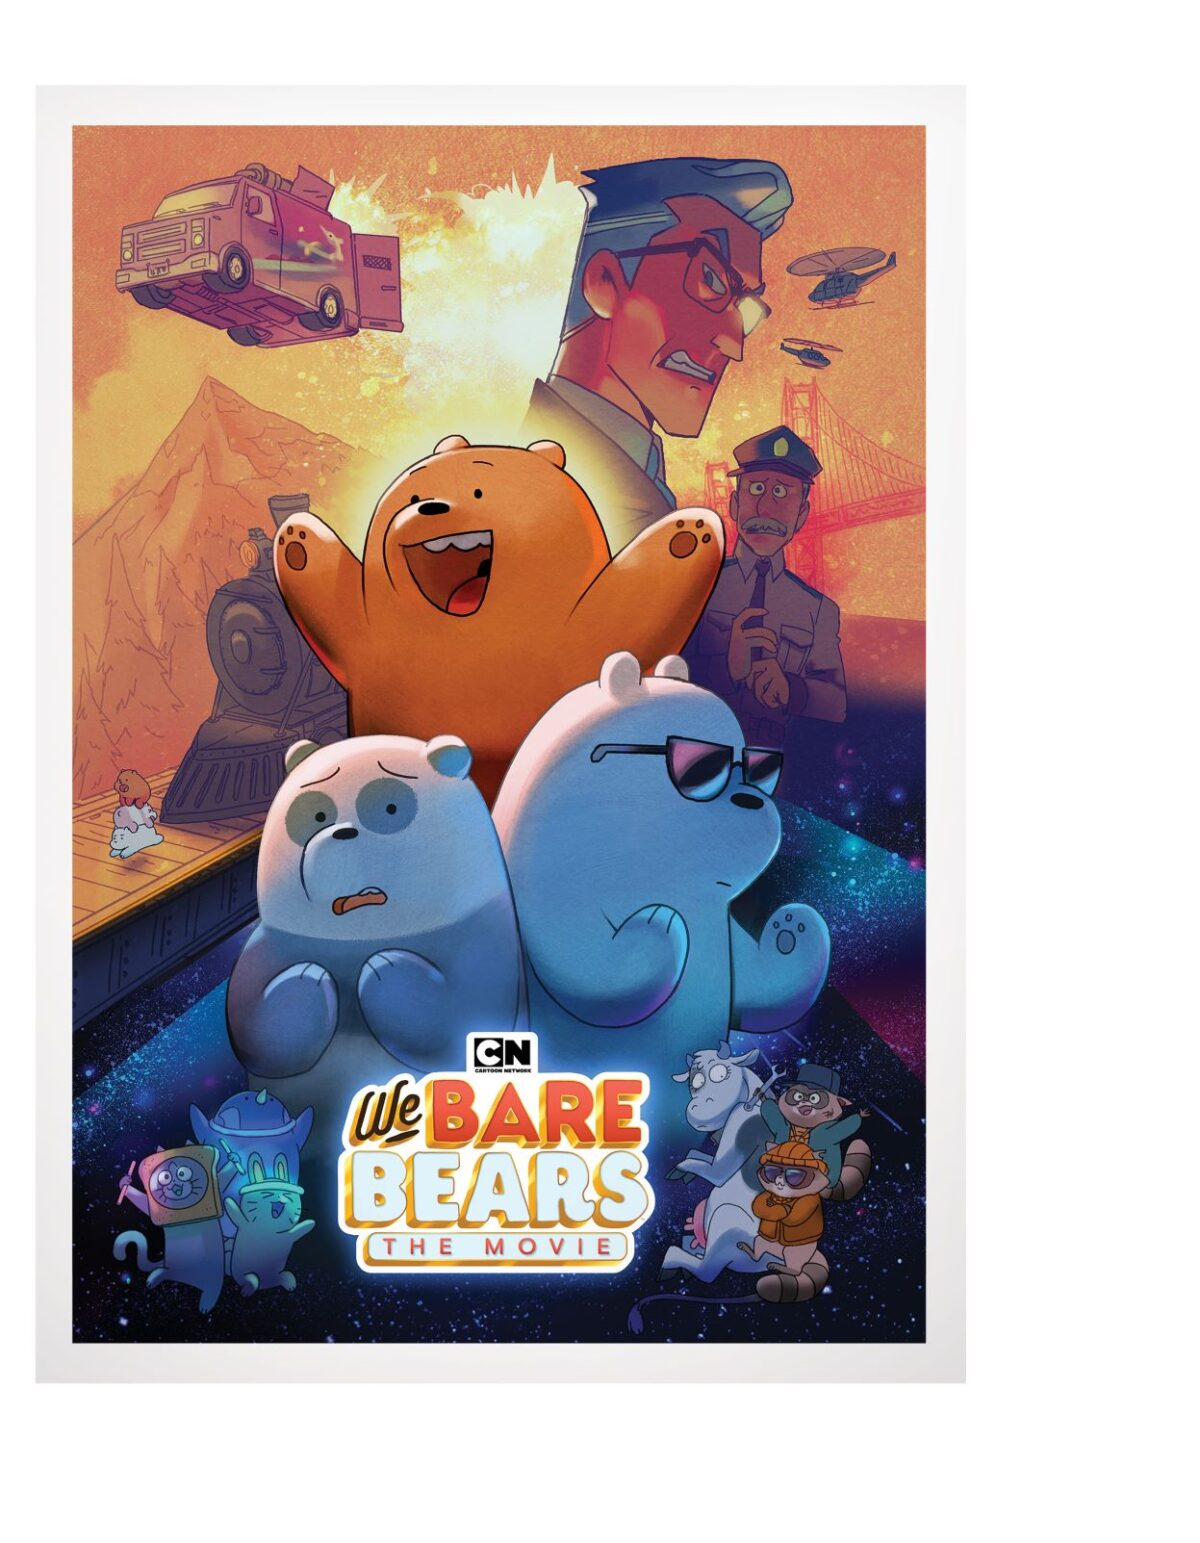 We Bare Bears Movie Coming to DVD 8 September, Cartoon Network 7 September